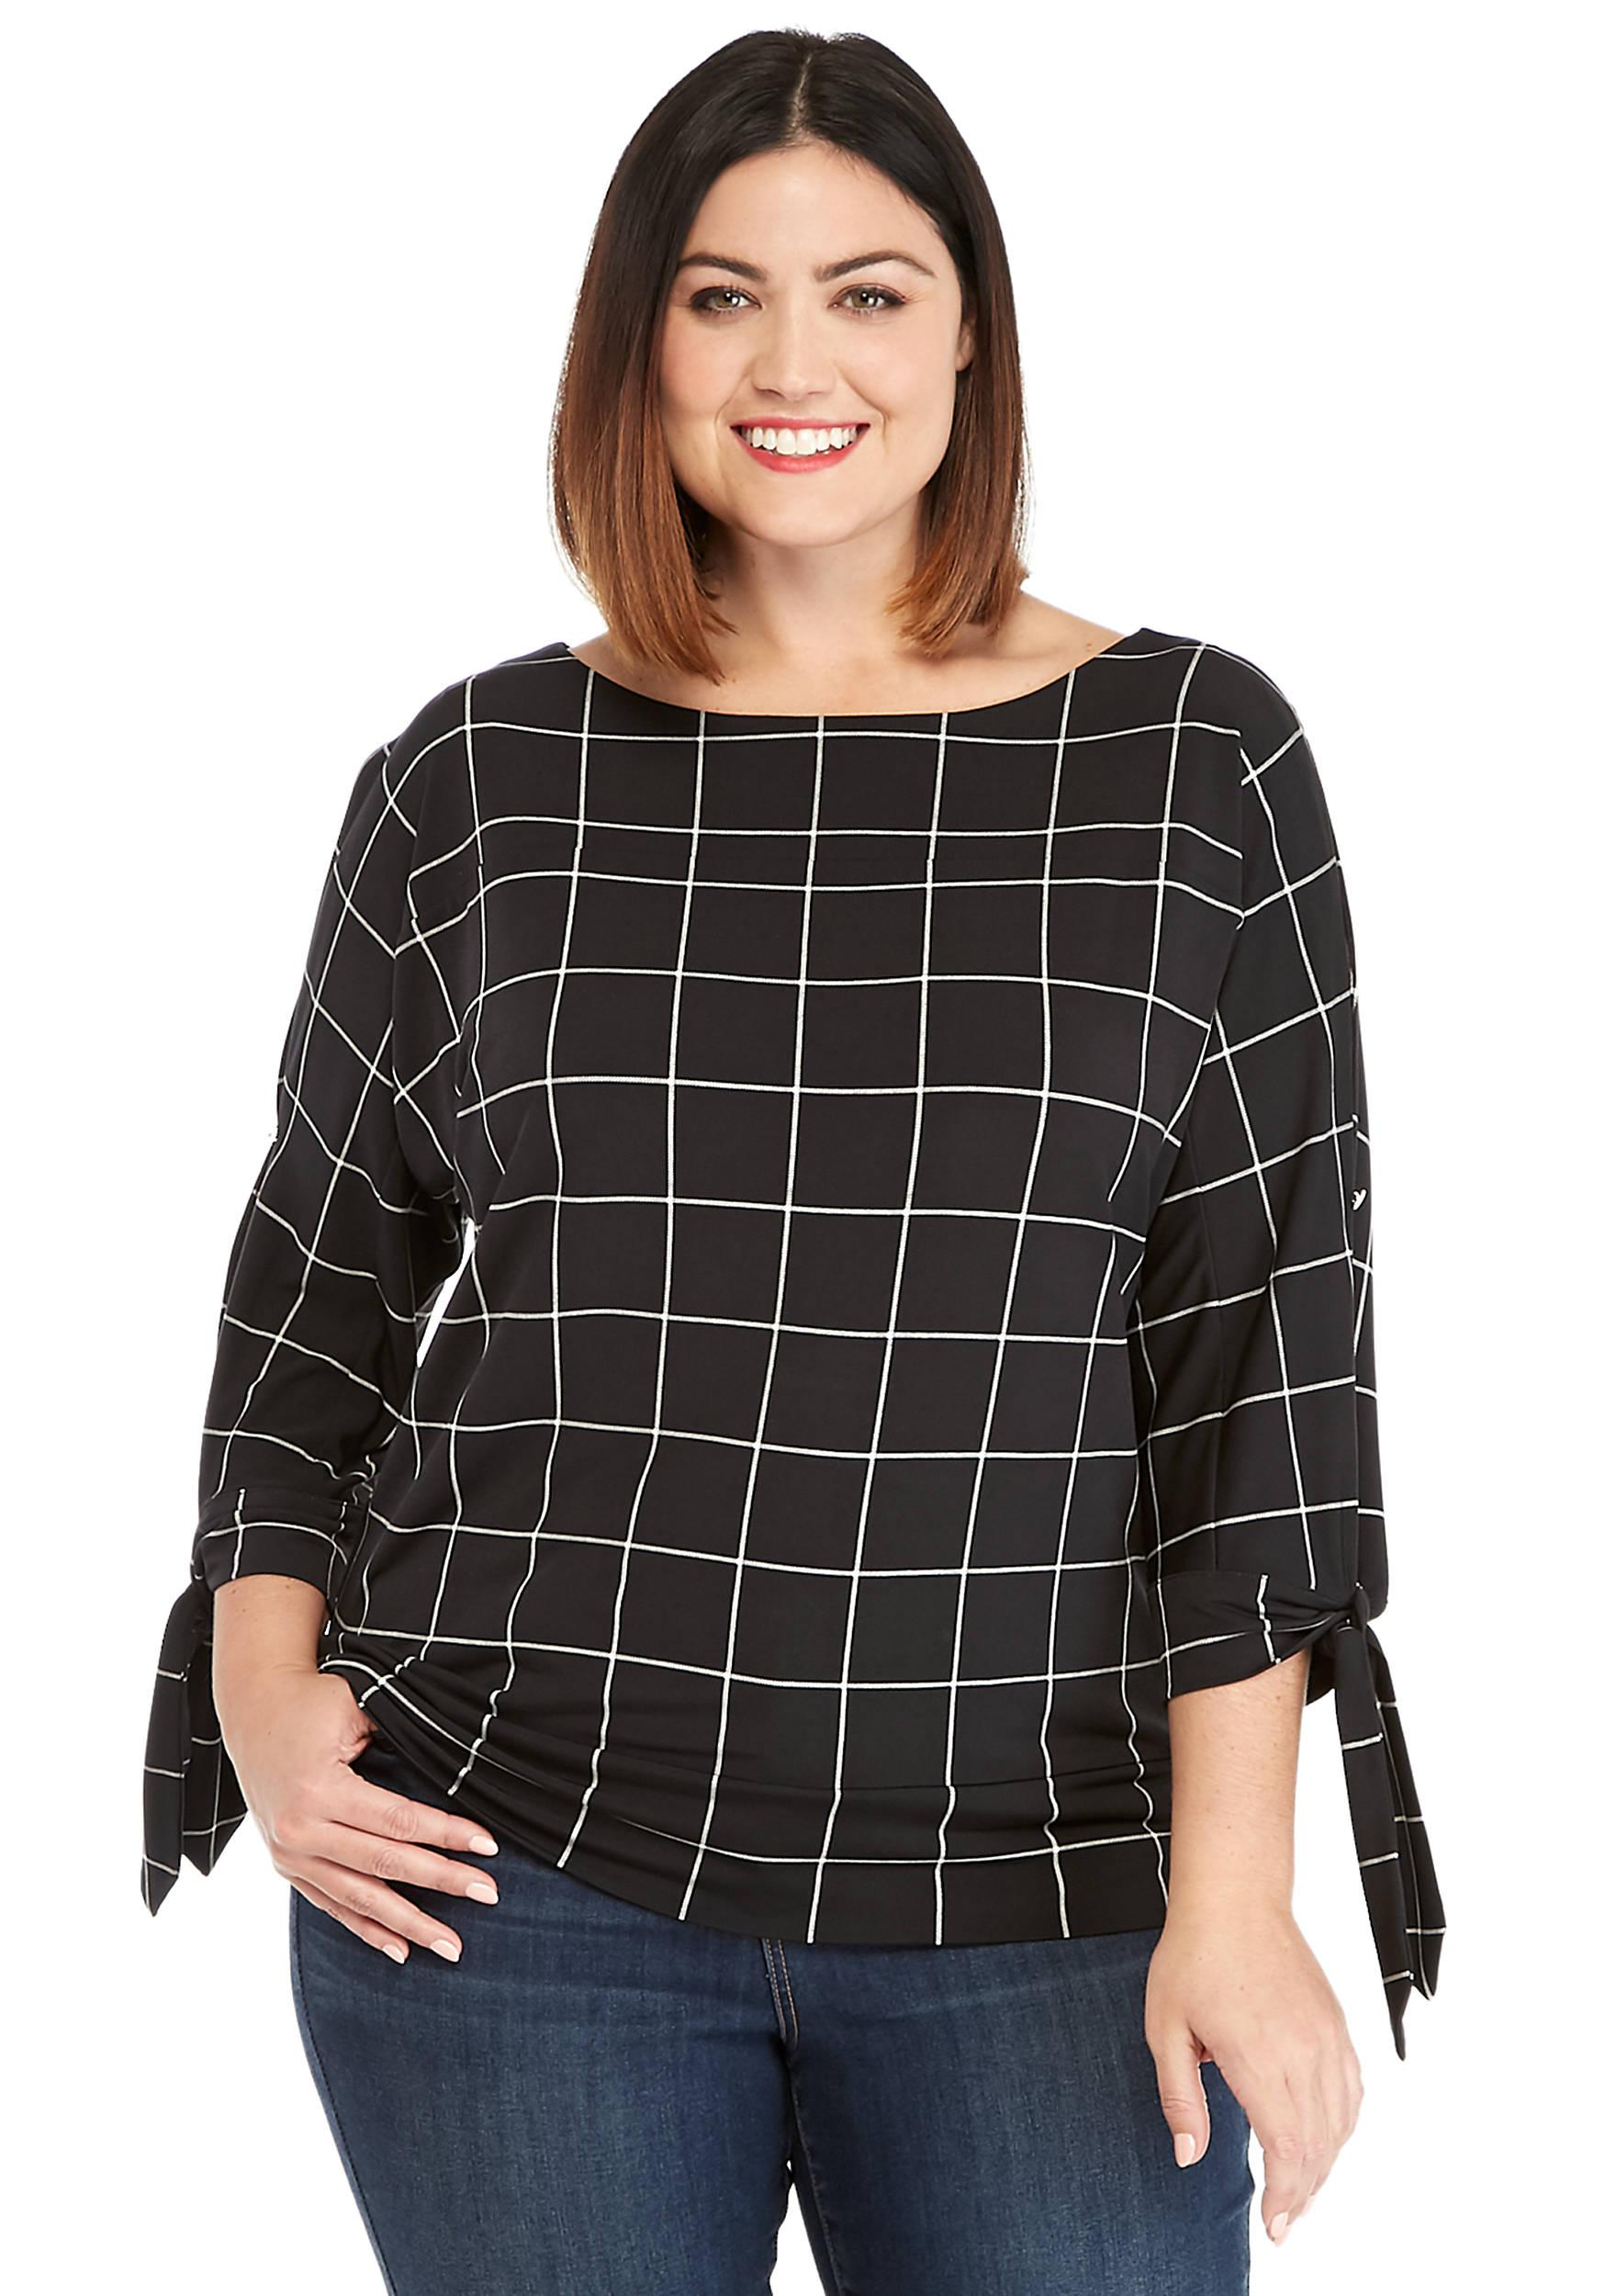 db65bc4b8cc Lyst - The Limited Plus Size Printed Banded Bottom Knit Top in Black